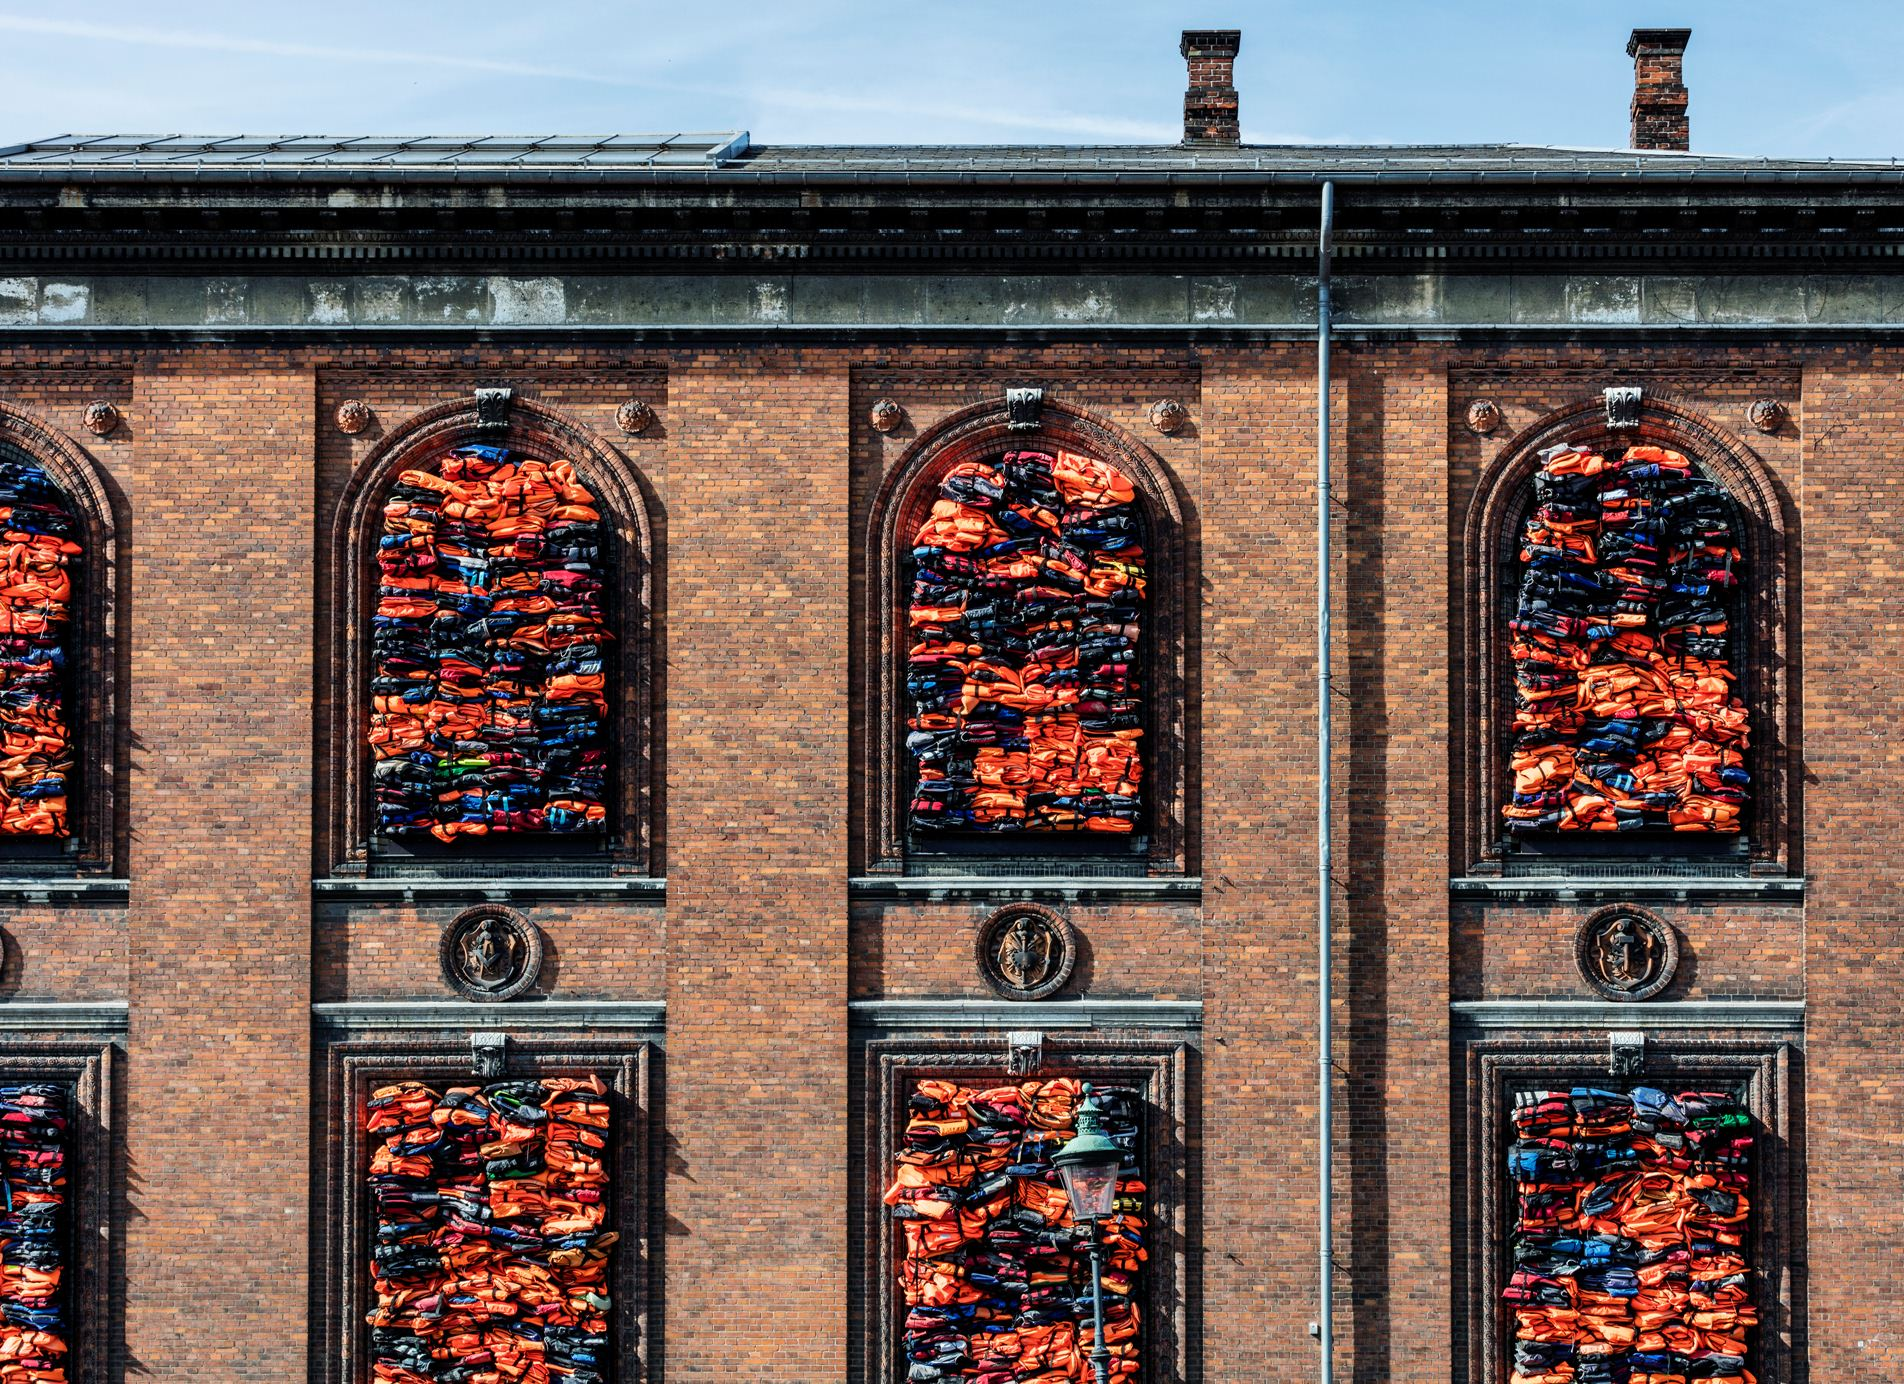 """Ai Weiwei, """"Soleil Levant"""", 2017. Installation view, Kunsthal Charlottenborg, 2017. Courtesy of the artist. Photo by Anders Sune Berg"""